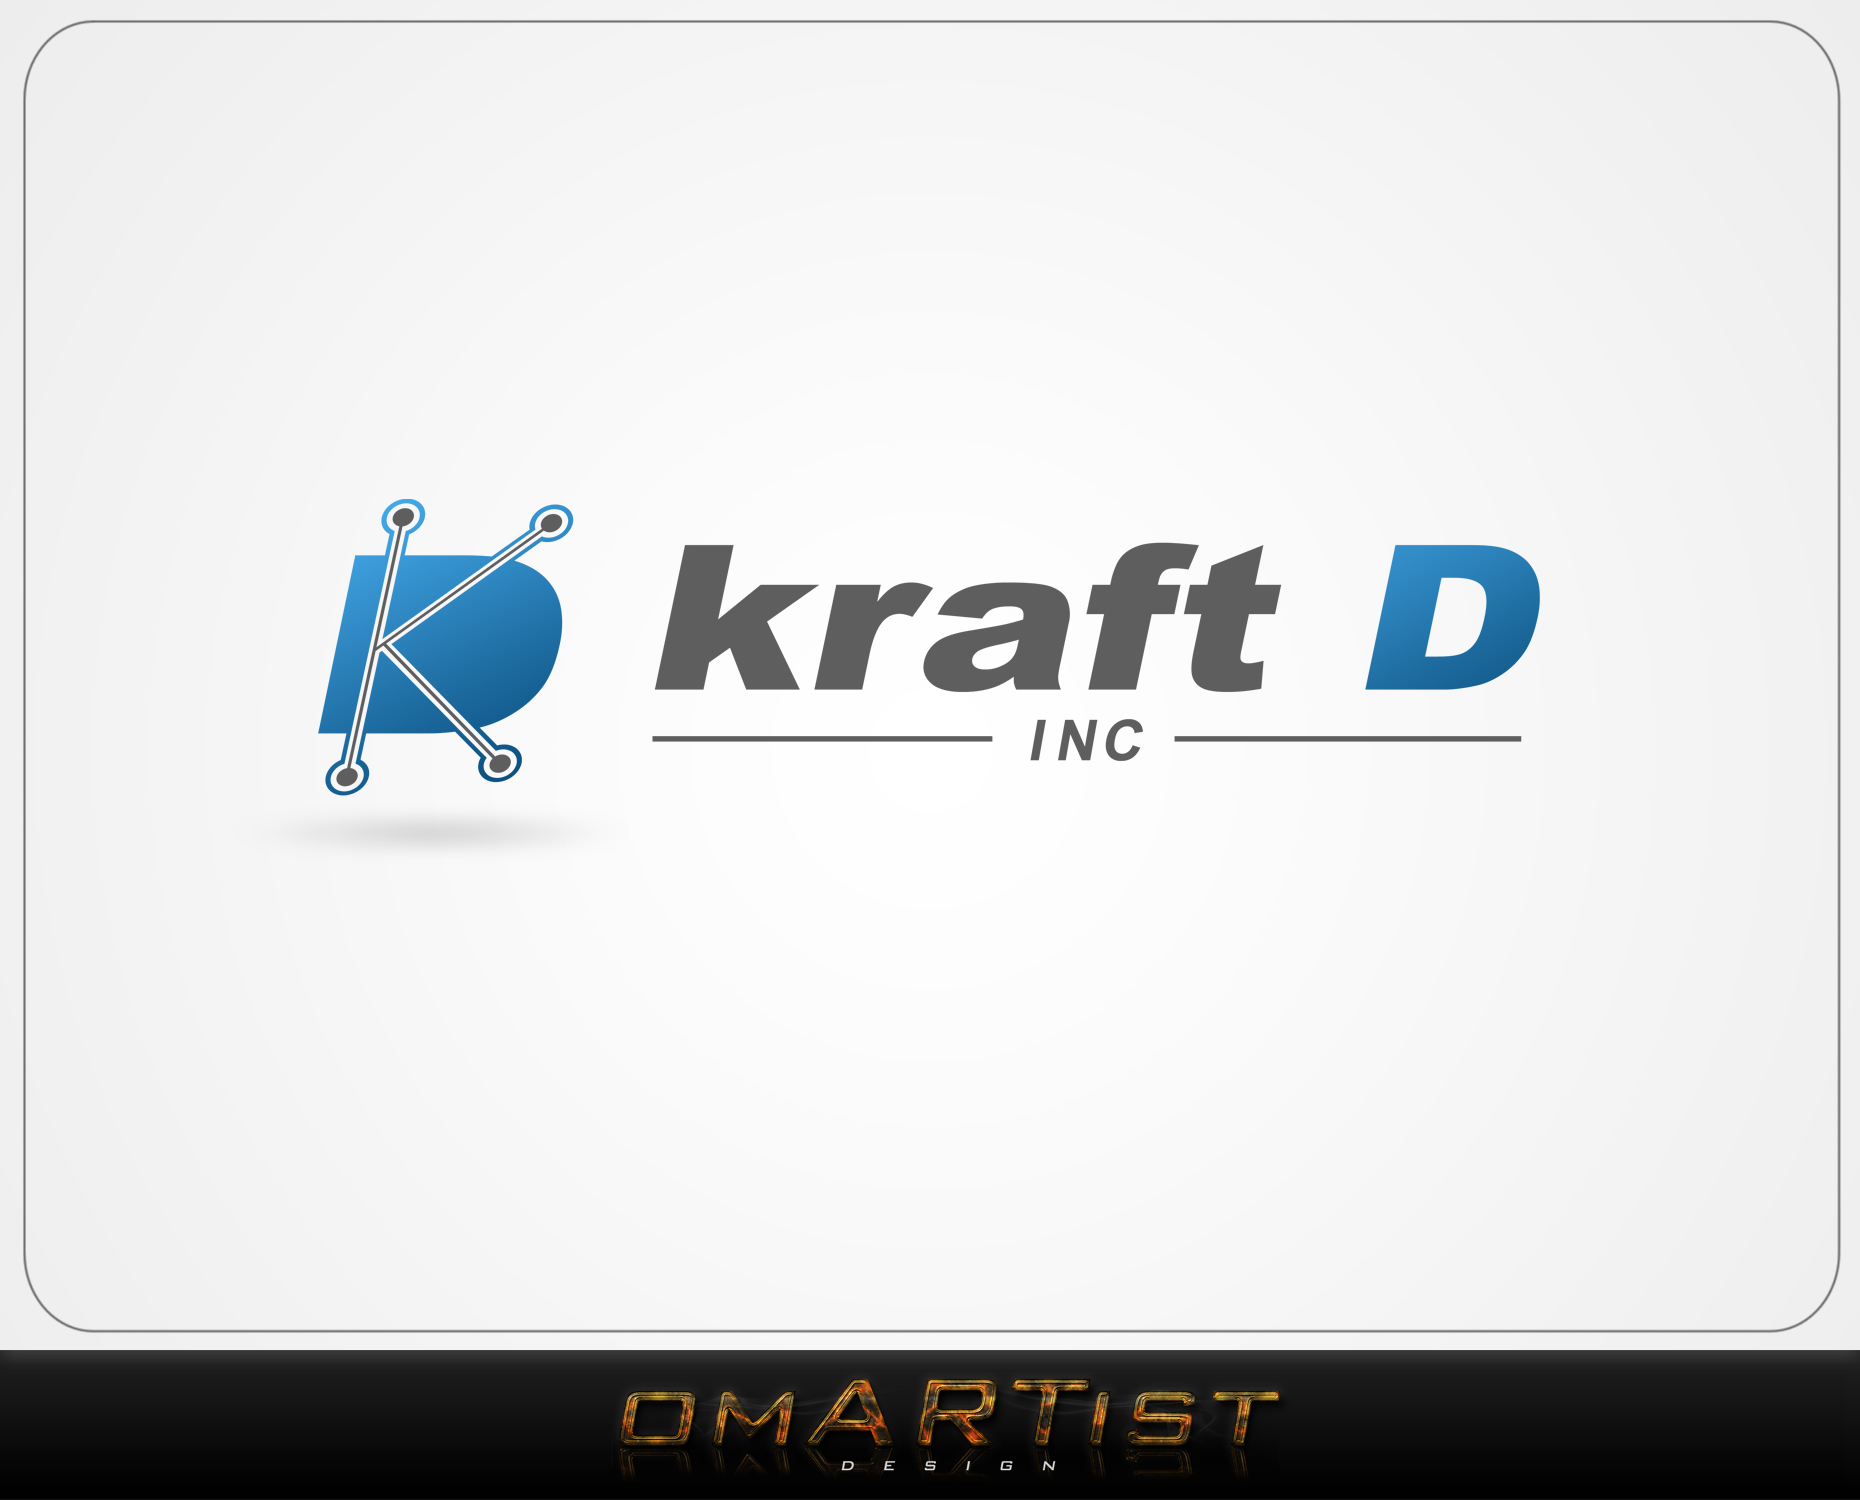 Logo Design by omARTist - Entry No. 425 in the Logo Design Contest Unique Logo Design Wanted for Kraft D Inc.